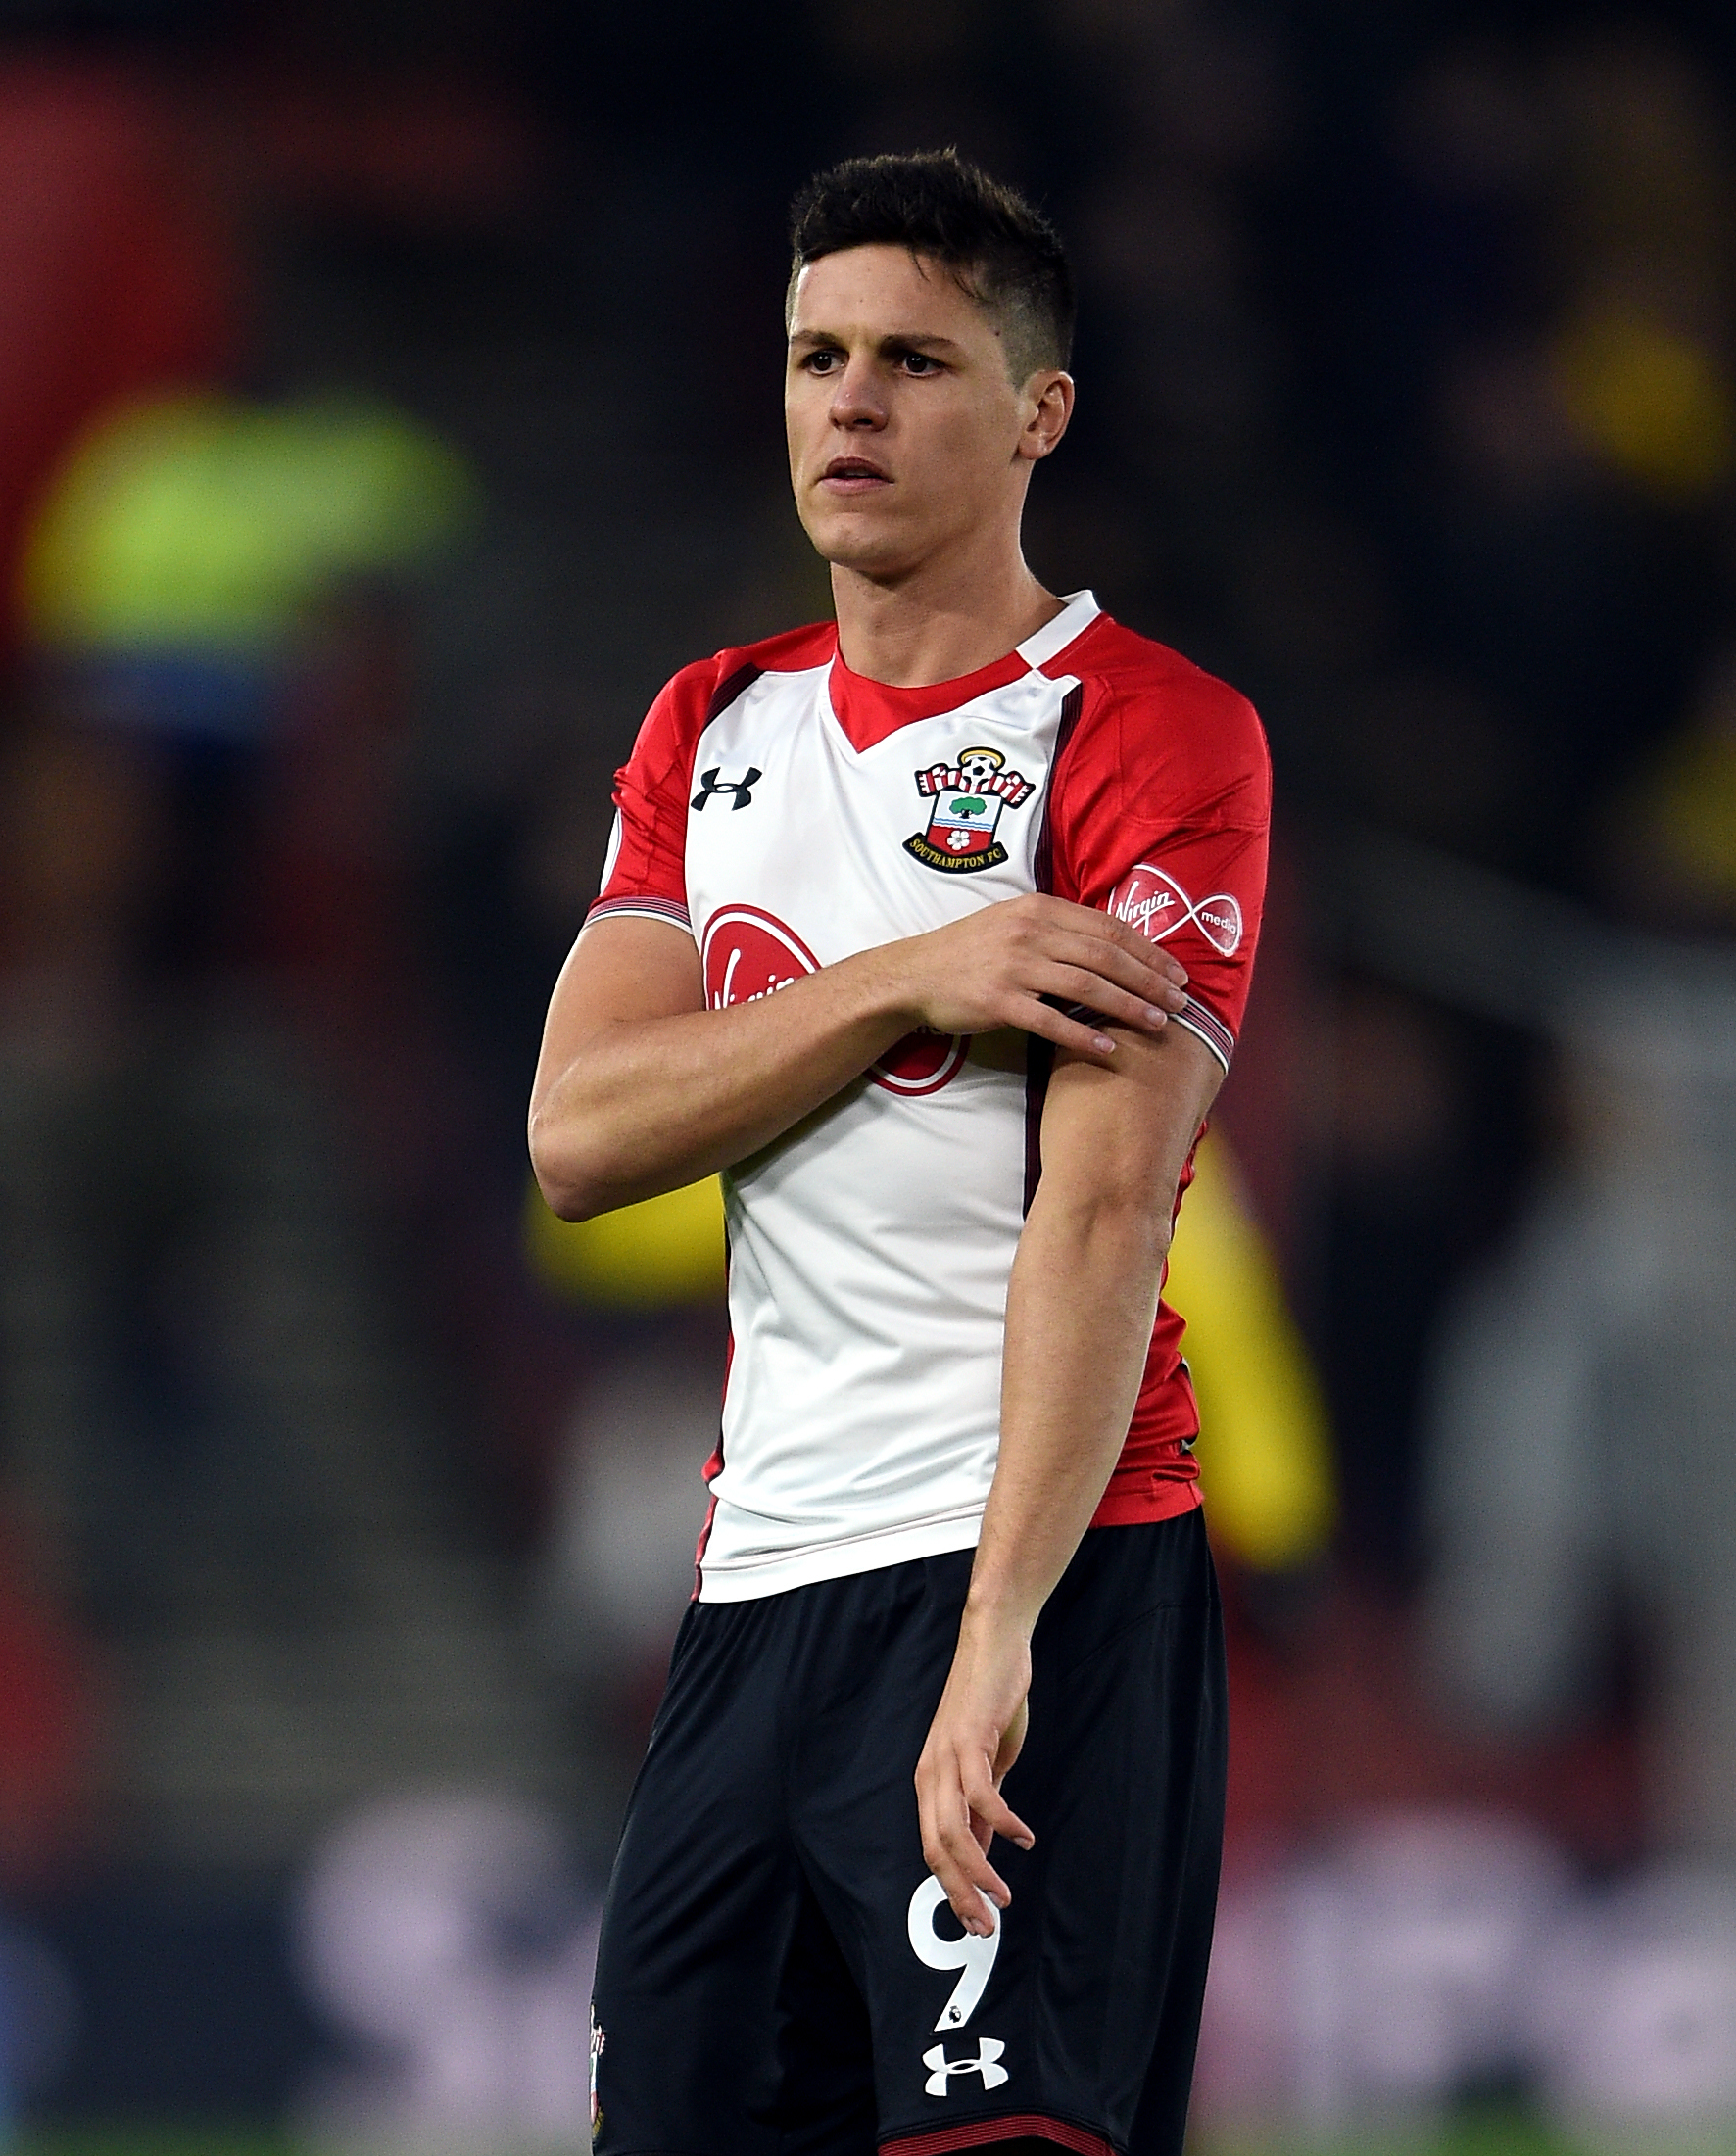 Southampton striker Guido Carrillo is looking for a new club